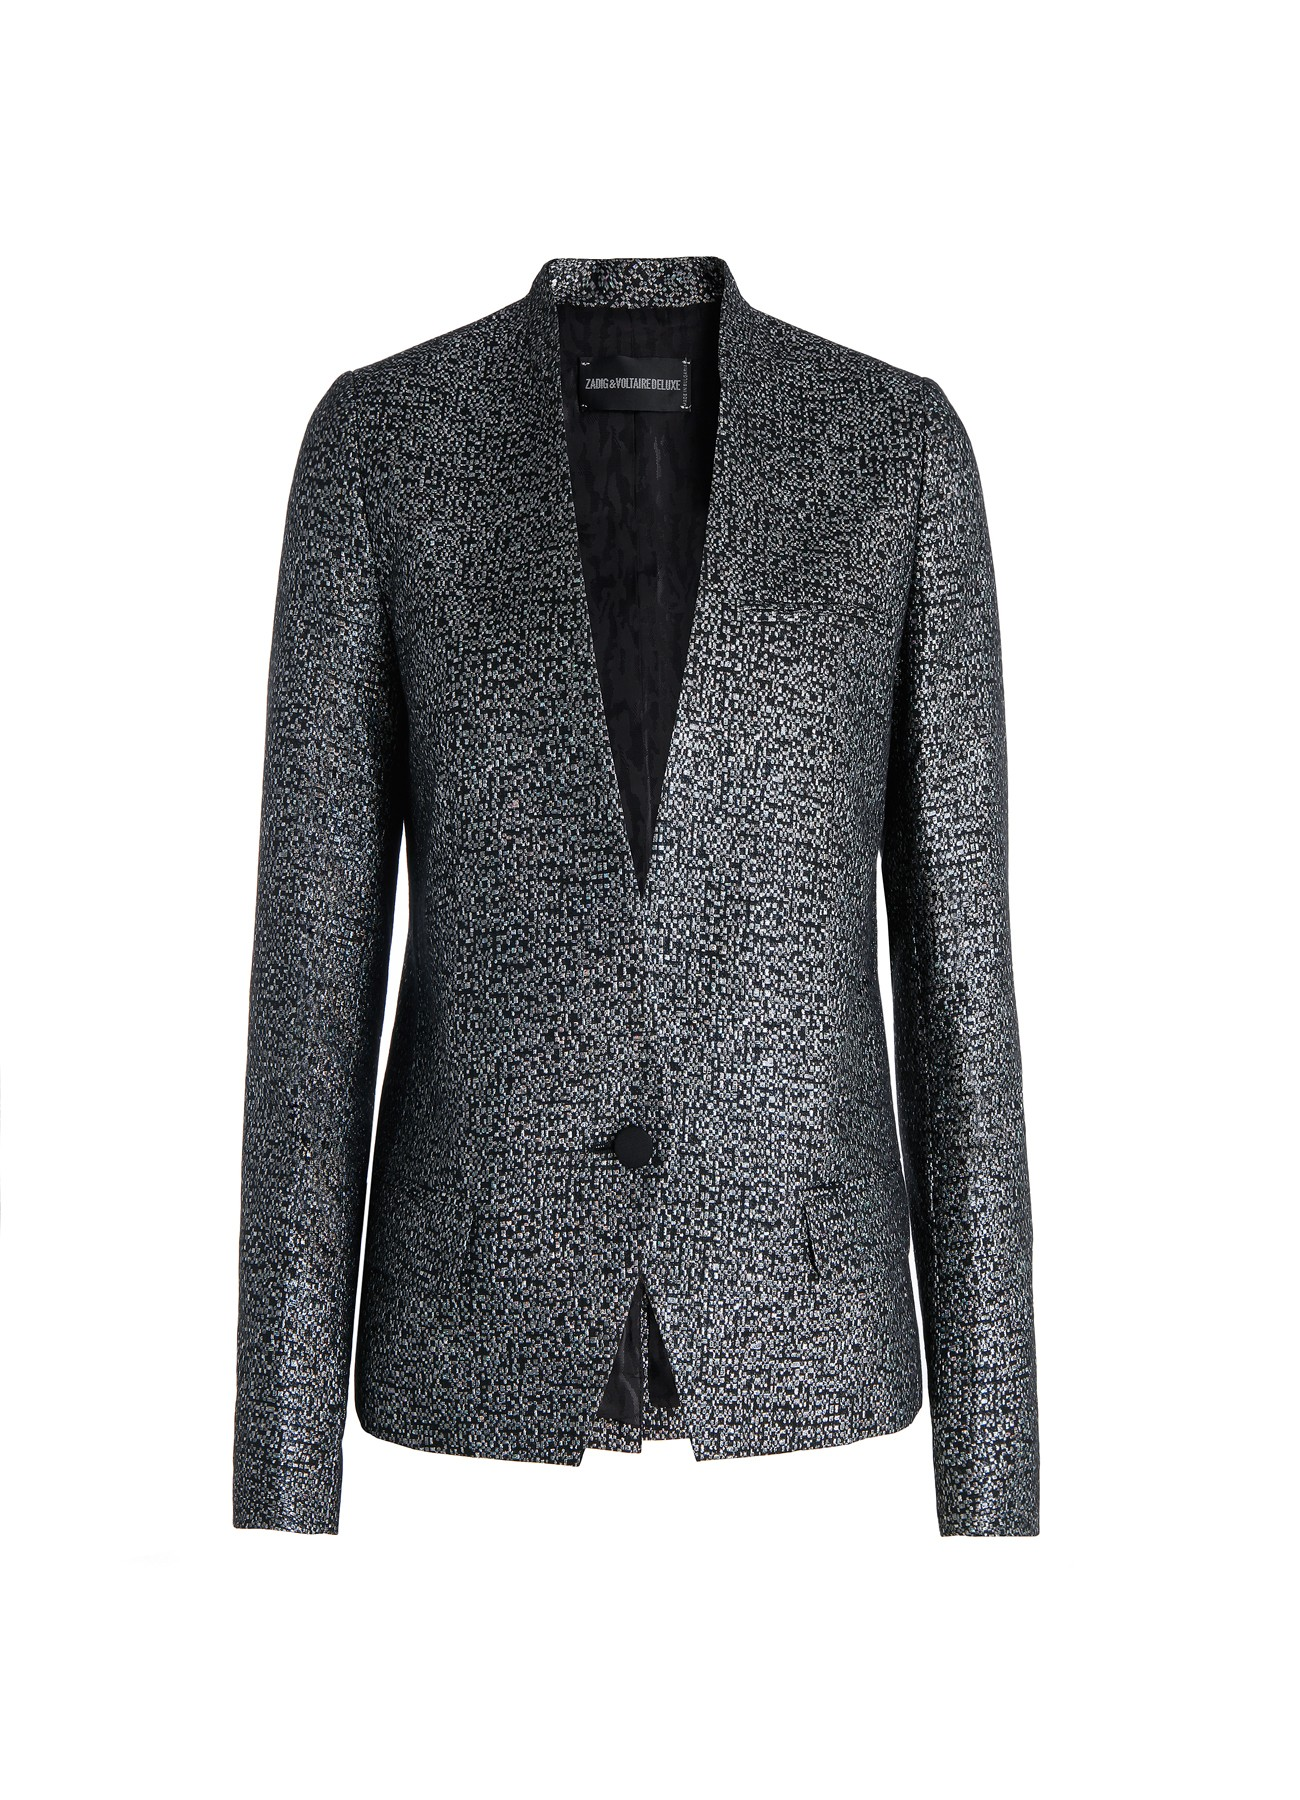 jacket for  woman vegas pixel deluxe silver-Zadig&Voltaire